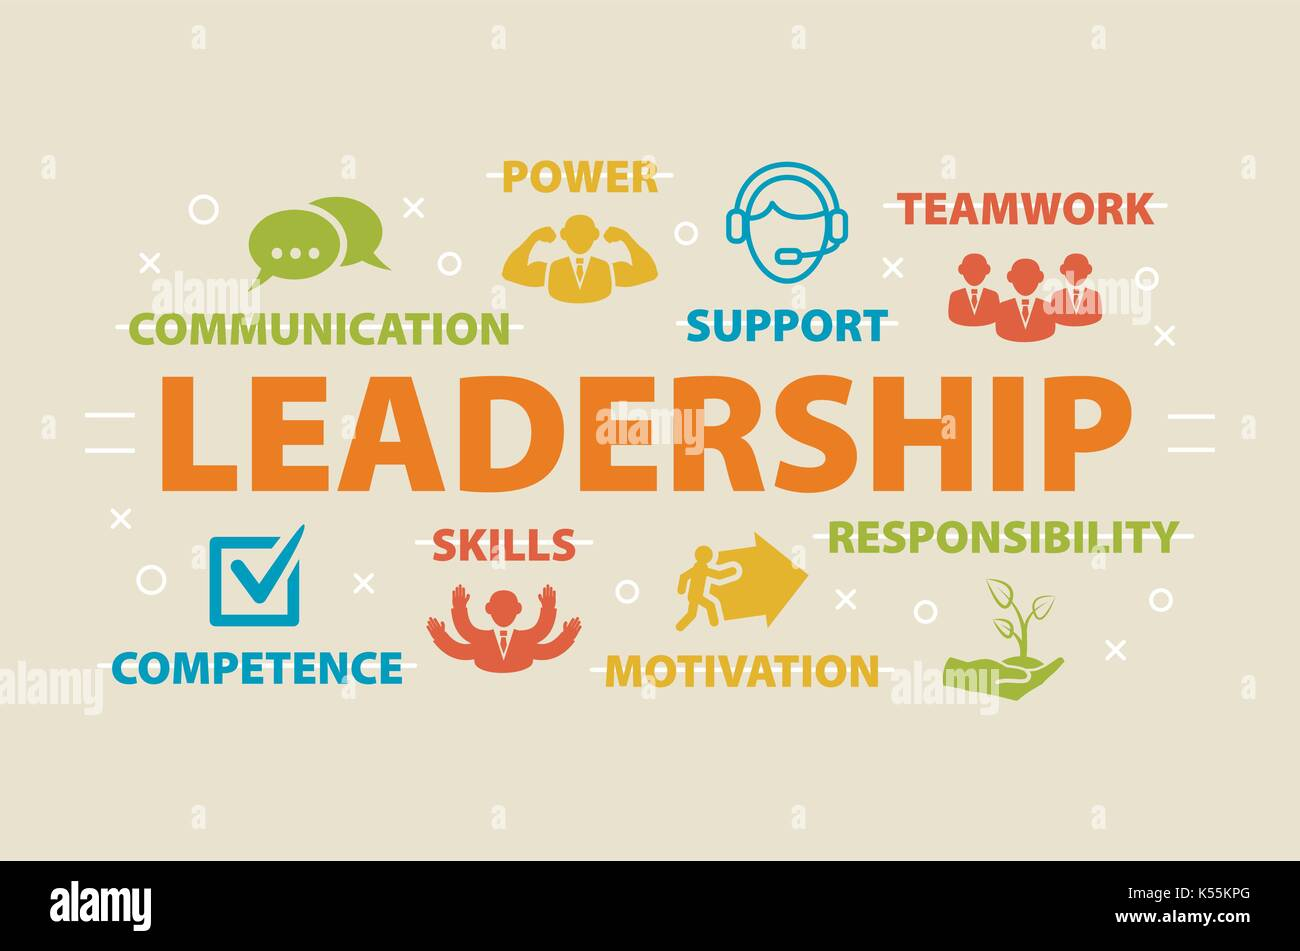 LEADERSHIP. Concept with icons. - Stock Image